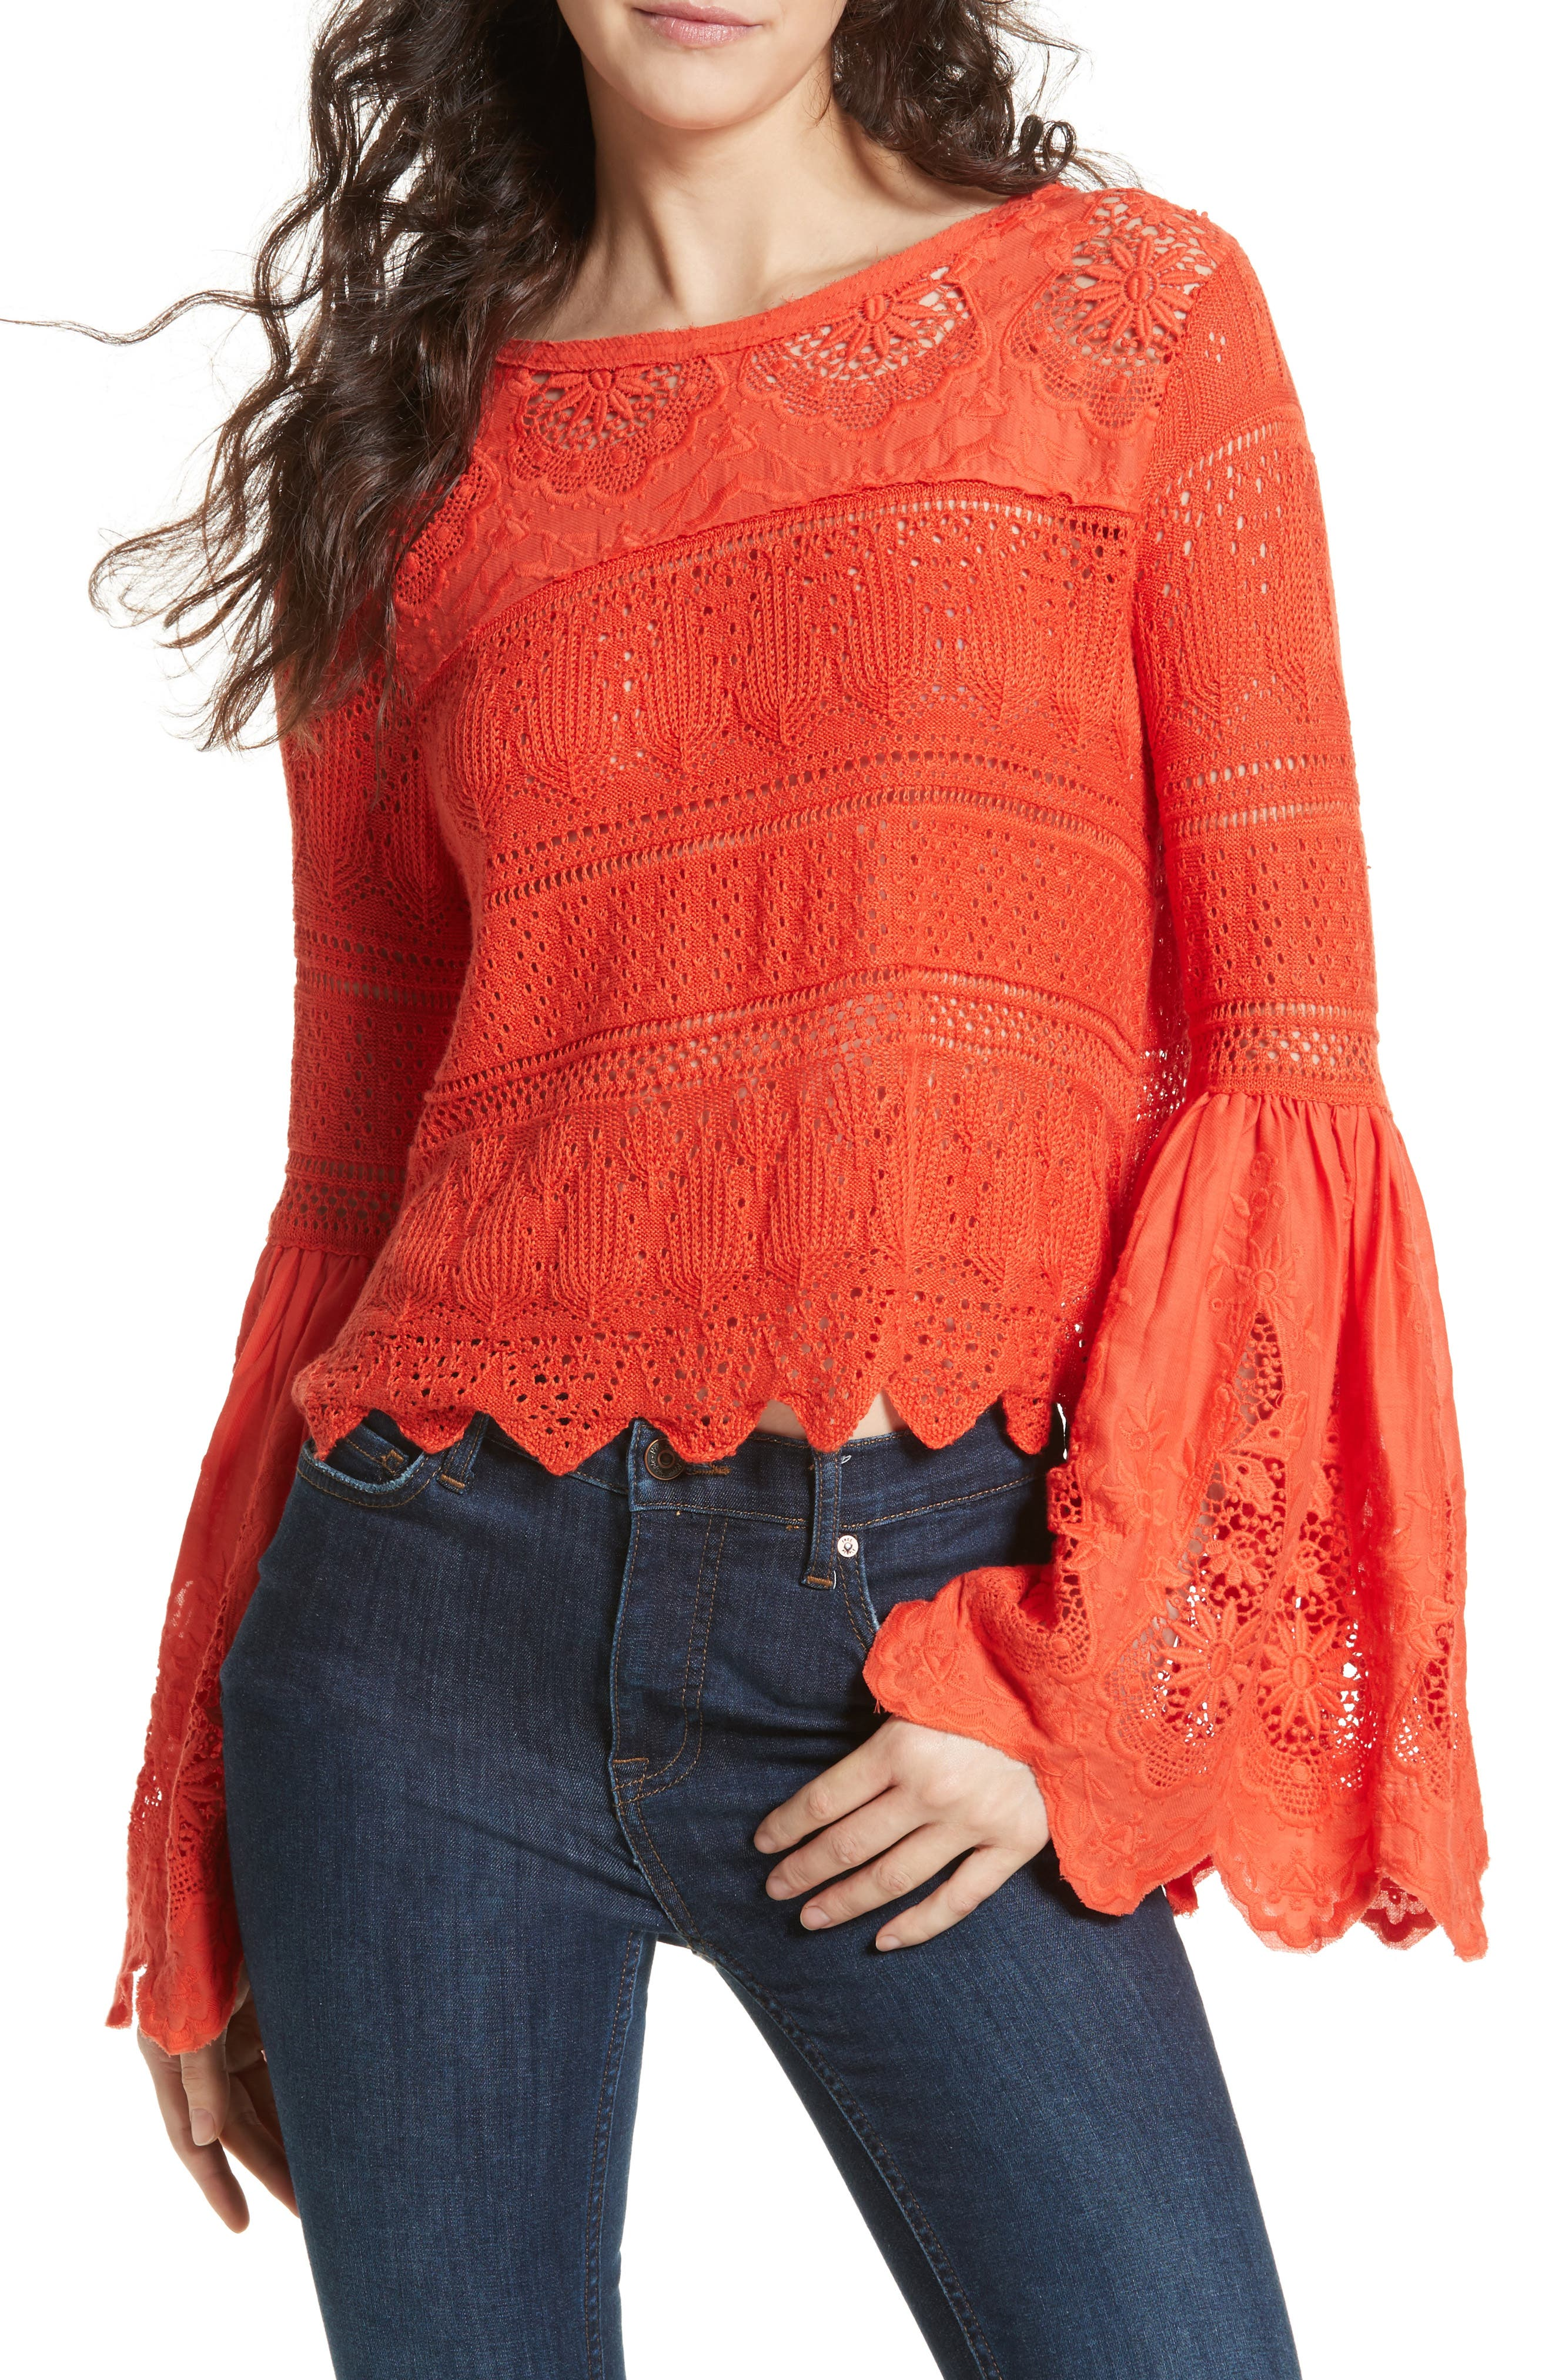 Once Upon a Time Lace Top,                             Main thumbnail 1, color,                             Red